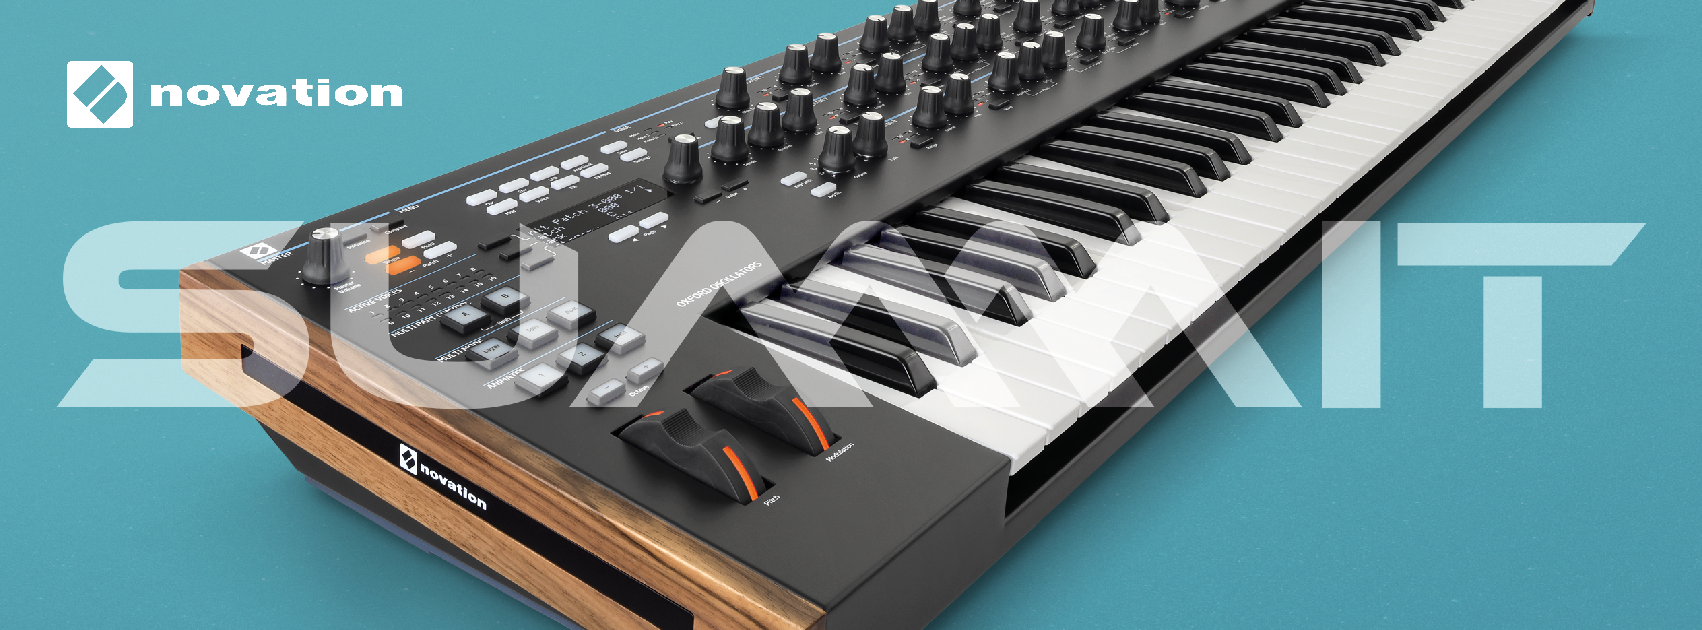 novation-summit.png